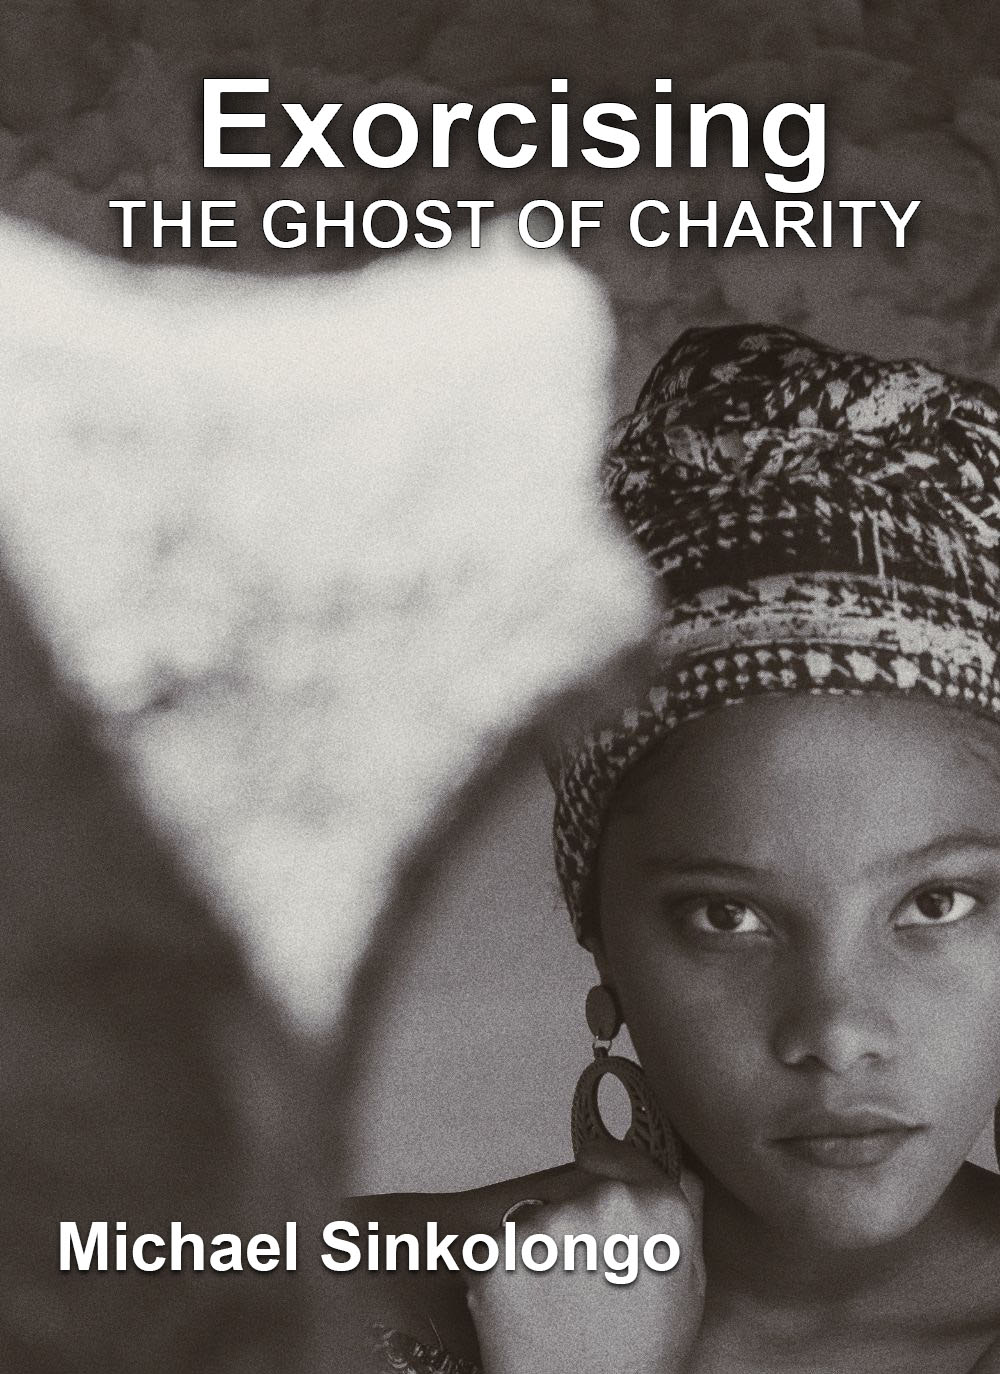 Exorcising the Ghost of Charity